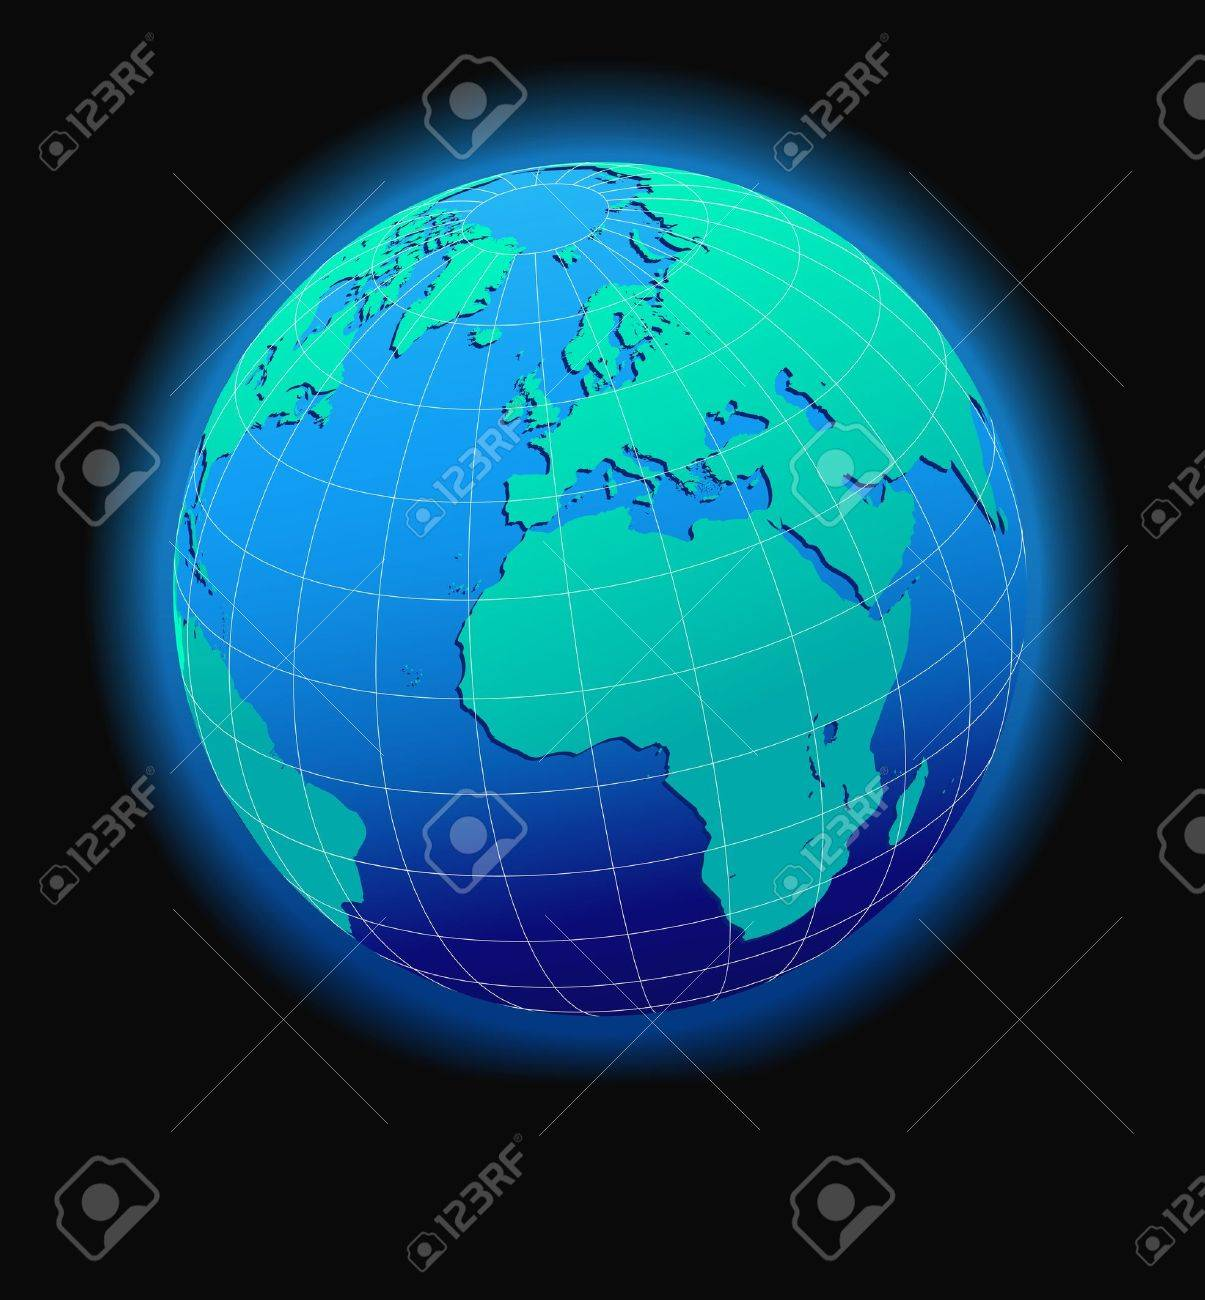 Europe And Africa, Global World In Space - Map Icon Of The World ...